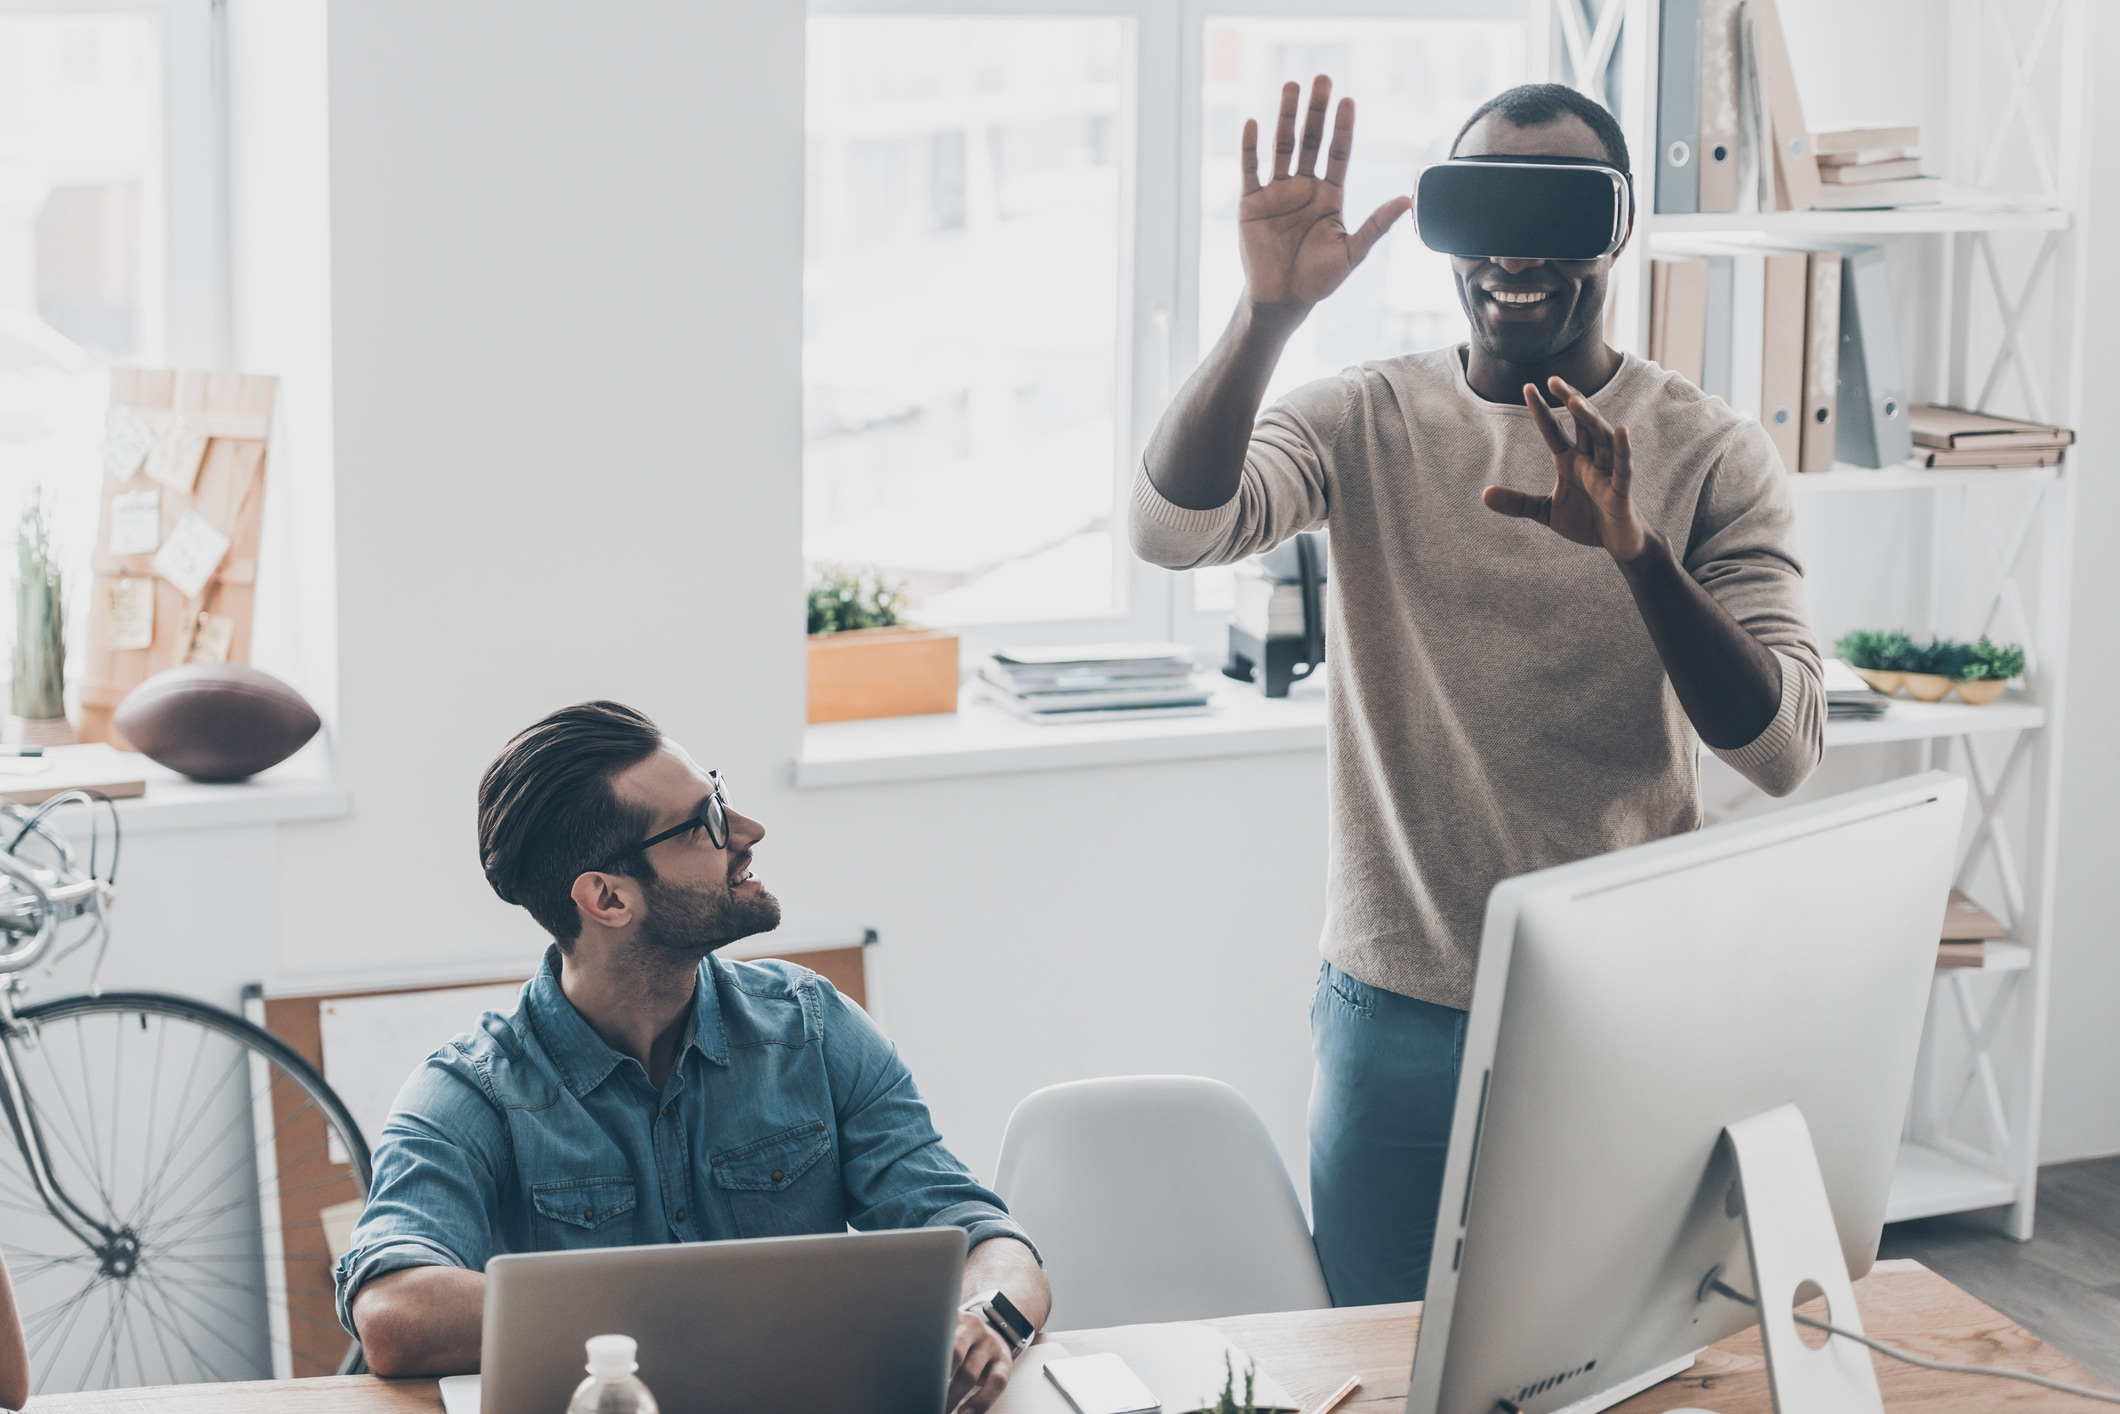 How To Use Virtual Reality in a Business Presentation